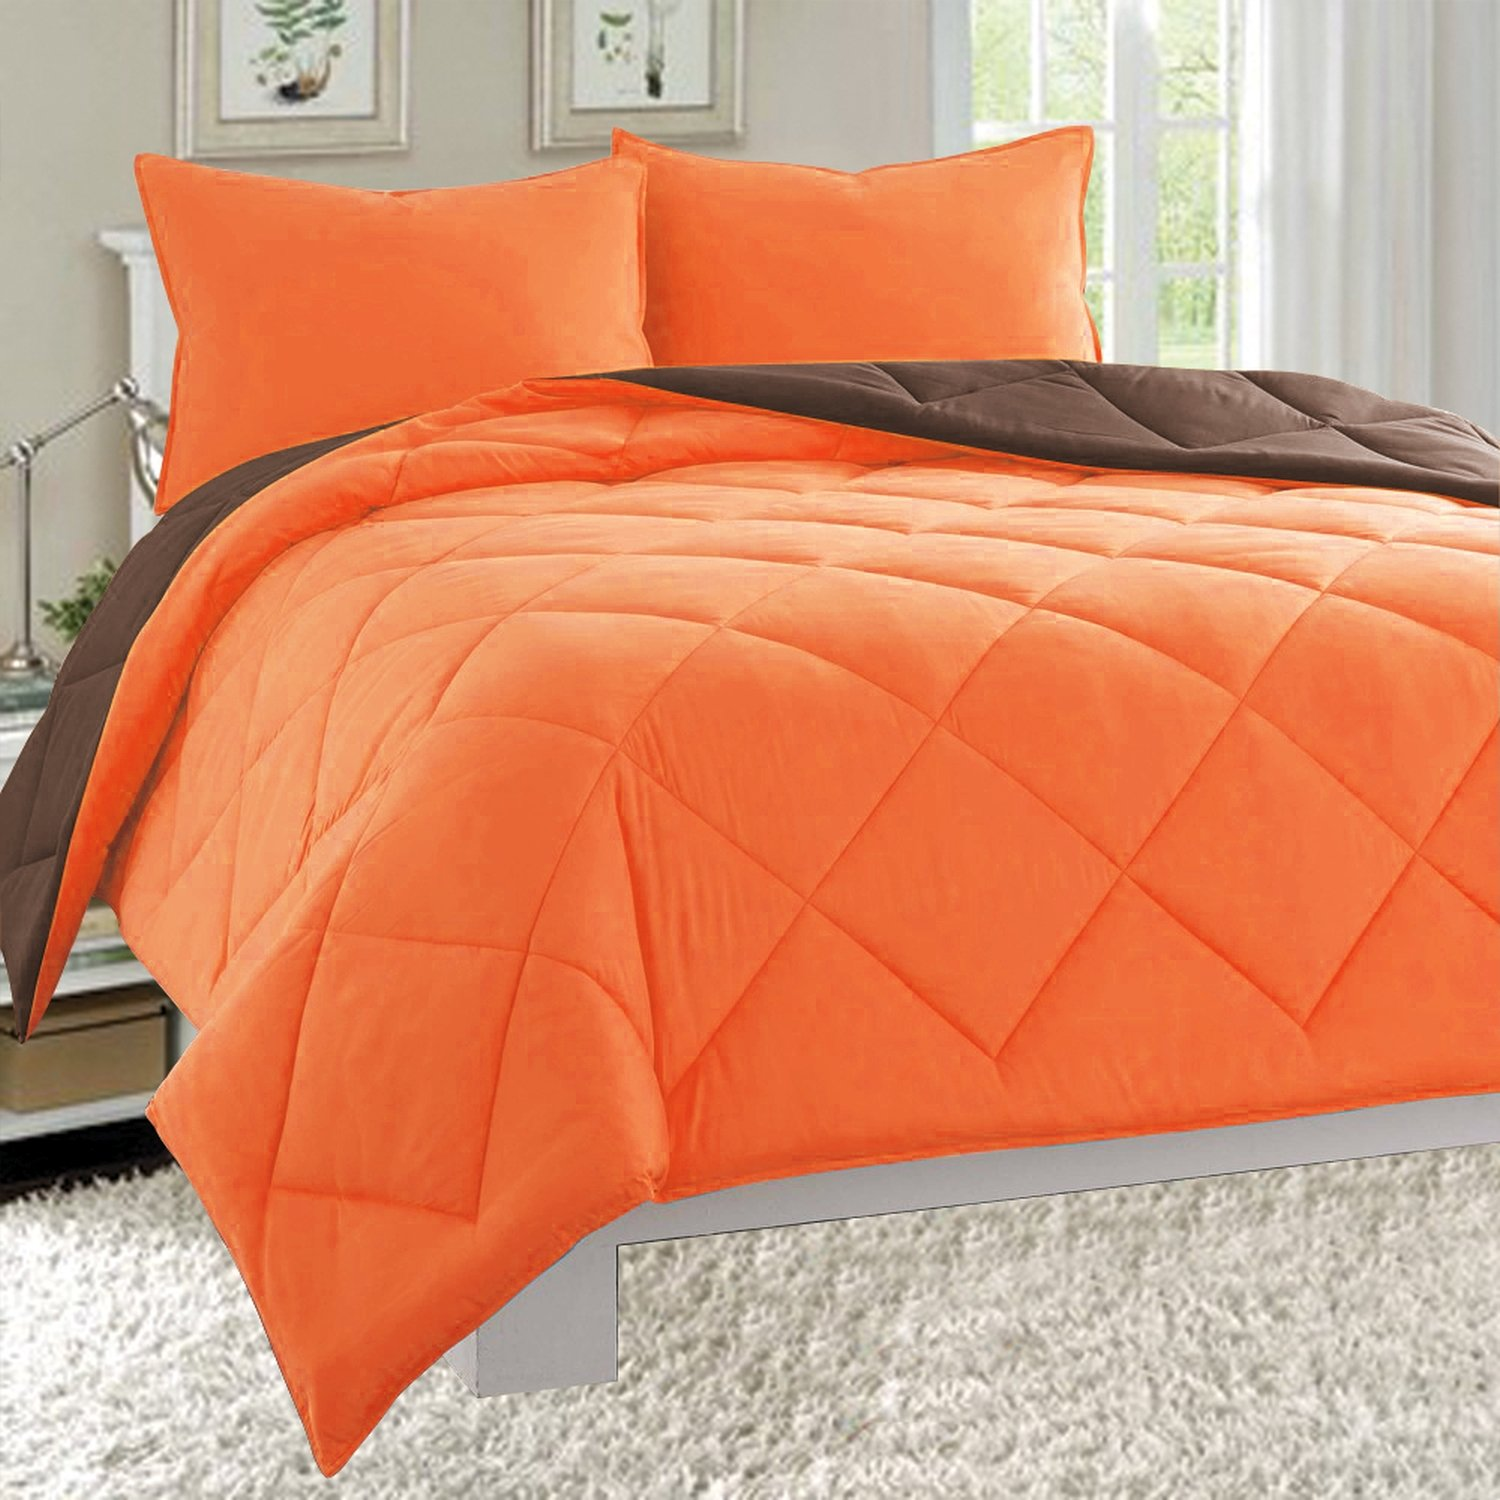 Orange Bedding Sets Ease Bedding With Style